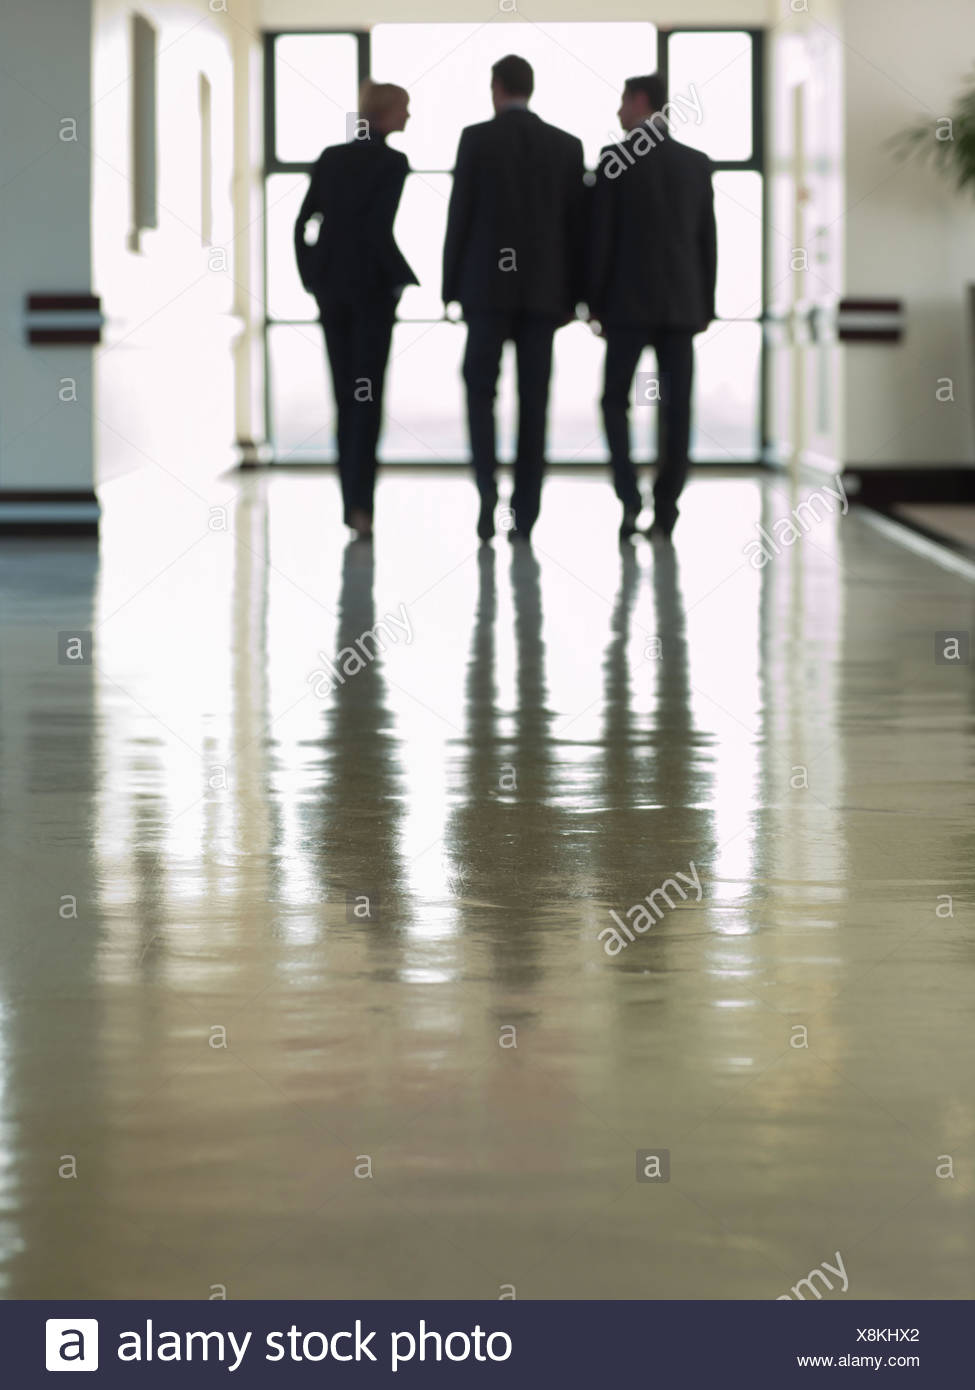 Business people walking in lobby - Stock Image